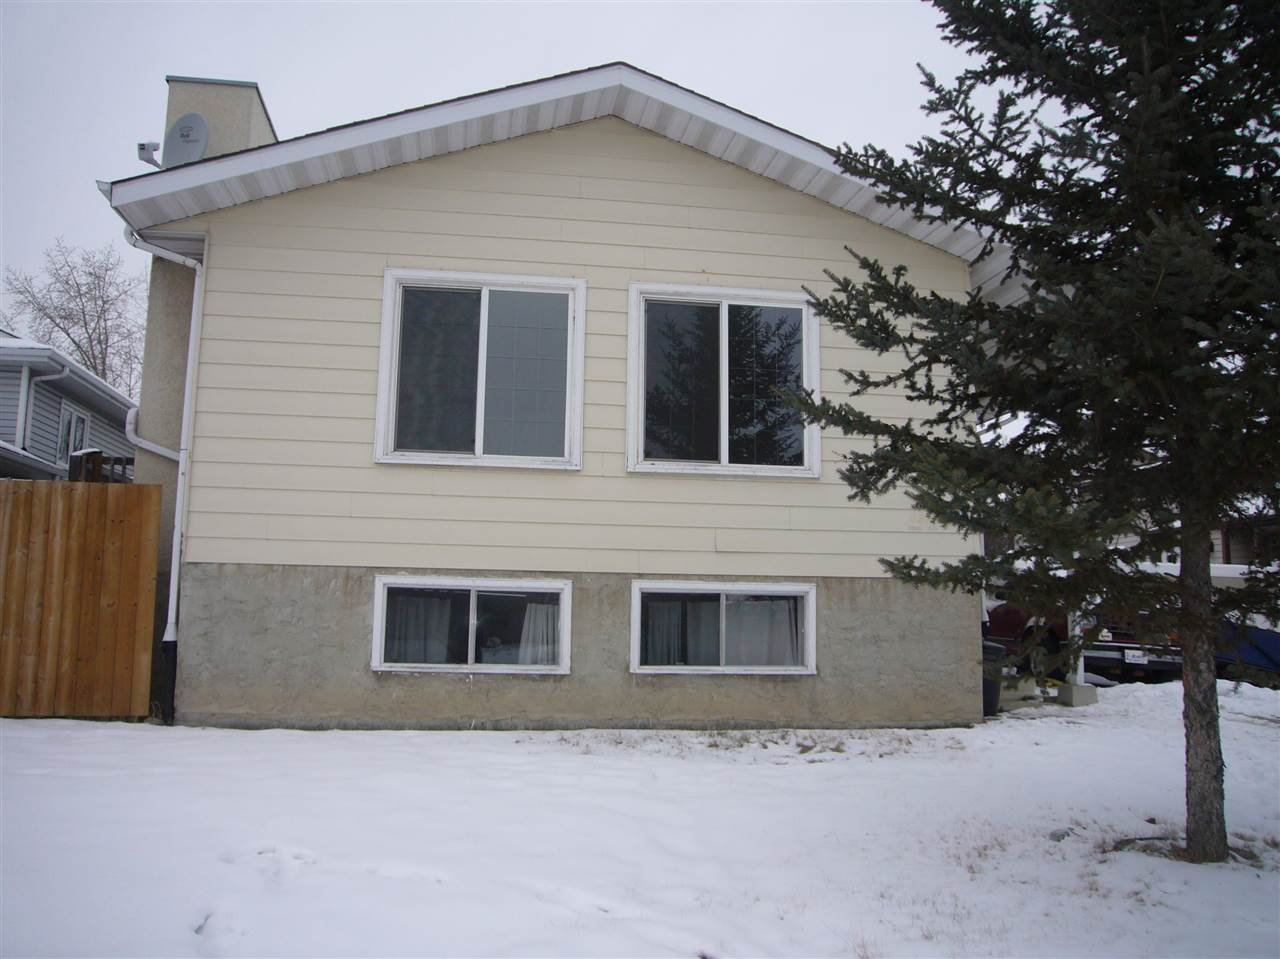 Main Photo: 3508 49A Street in Edmonton: Zone 29 House for sale : MLS®# E4182519